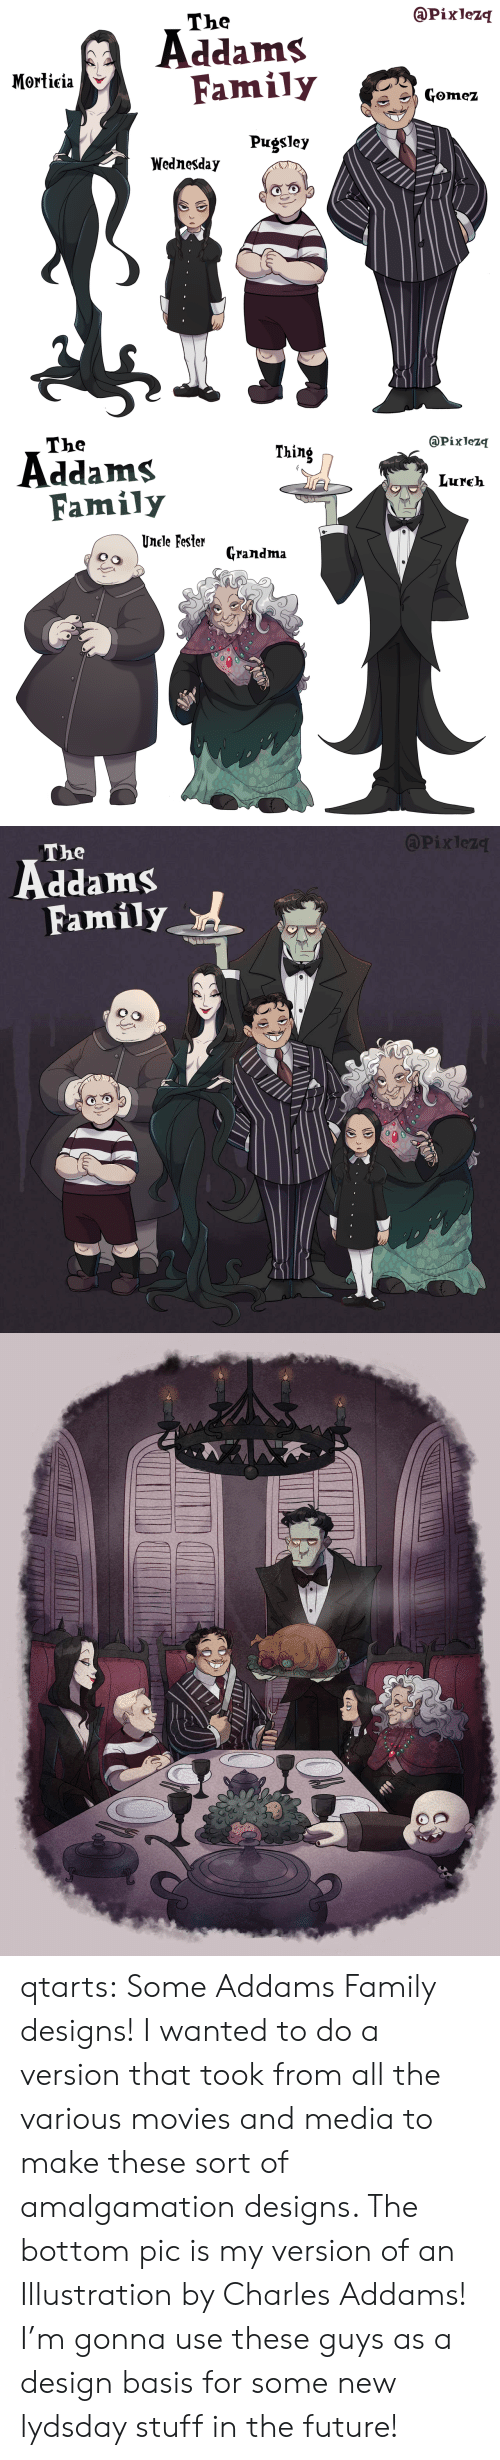 charles addams: @Pixlezq  The  Addams  Family  Morticia  Gomez  Pugsley  Wednesday   @Pixlezq  The  Thing  Addams  Family  Lureh  Unele Fester  Grandma   APixlez  The  Family qtarts: Some Addams Family designs! I wanted to do a version that took from all the various movies and media to make these sort of amalgamation designs. The bottom pic is my version of an Illustration by Charles Addams! I'm gonna use these guys as a design basis for some new lydsday stuff in the future!